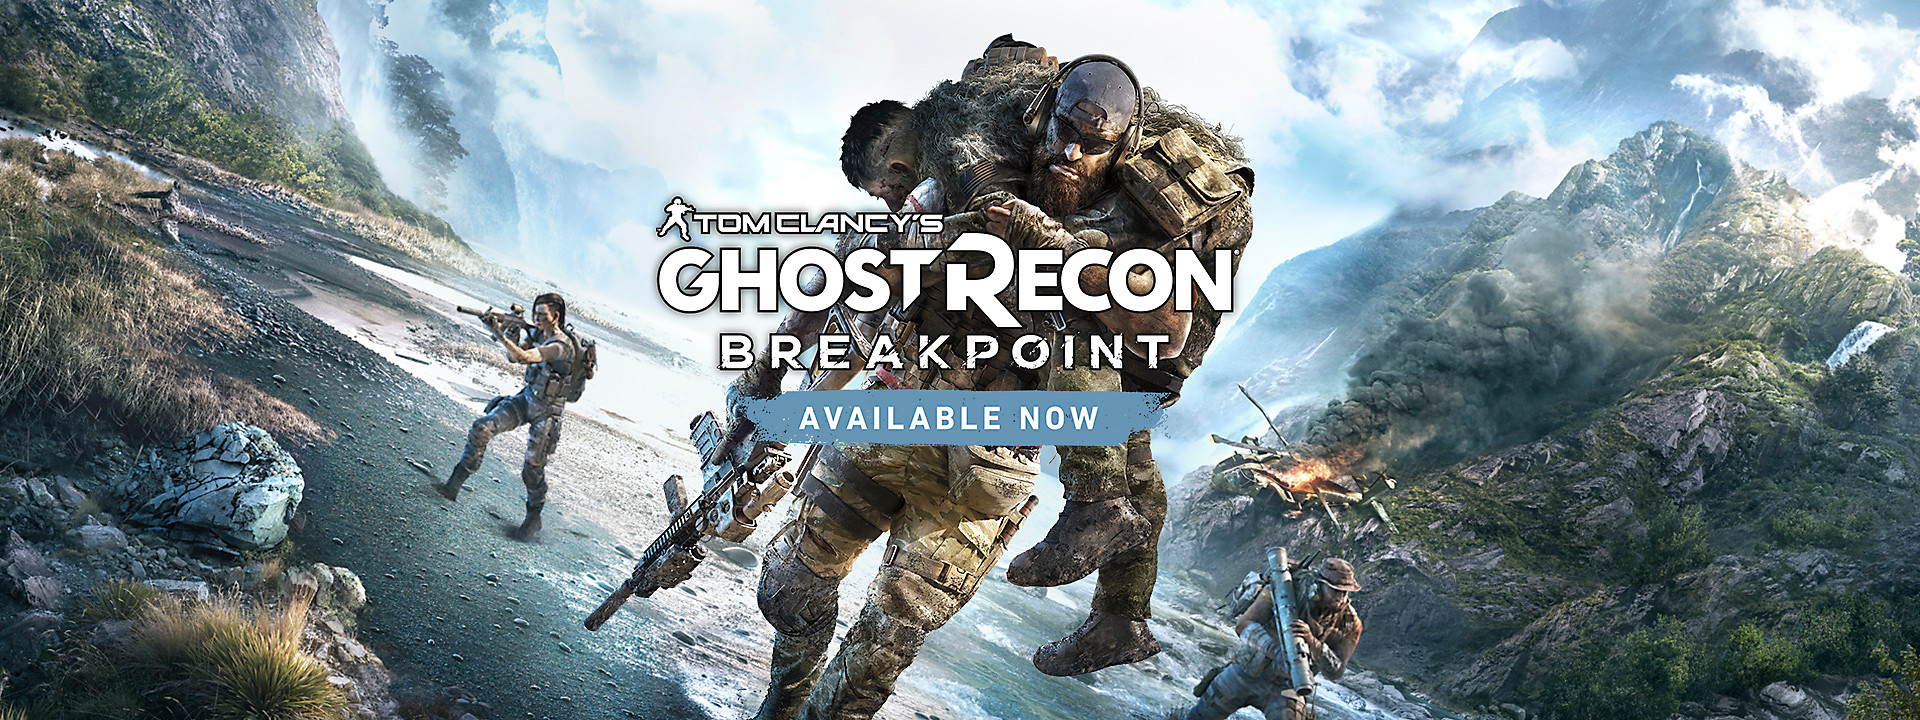 Tom Clancy's Ghost Recon Breakpoint - Now Available